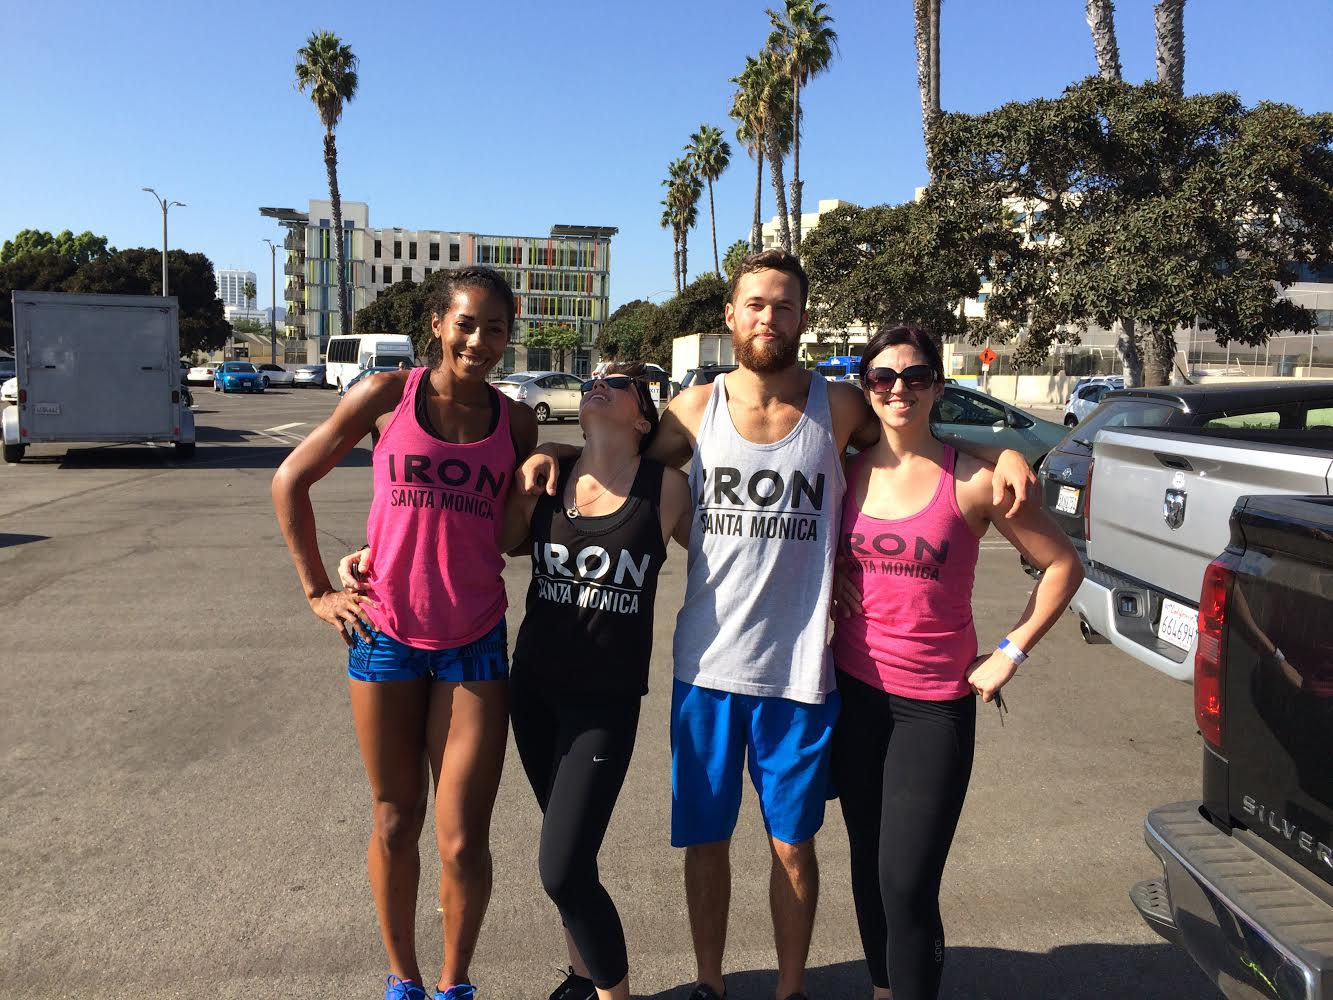 The Iron Fitness crew.